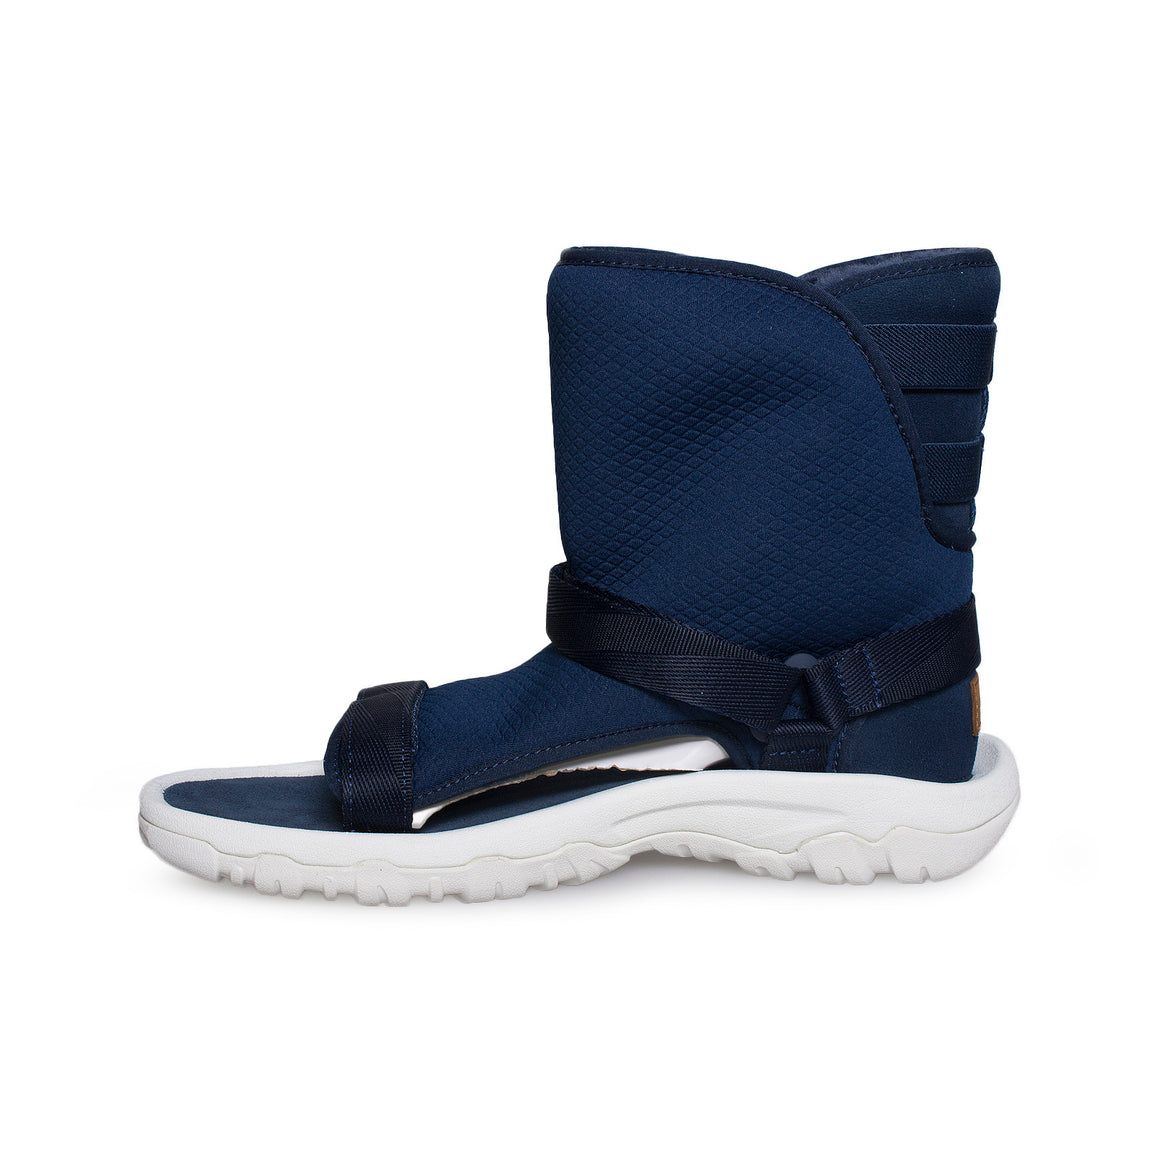 UGG/TEVA Collaboration - Hybrid Black Iris